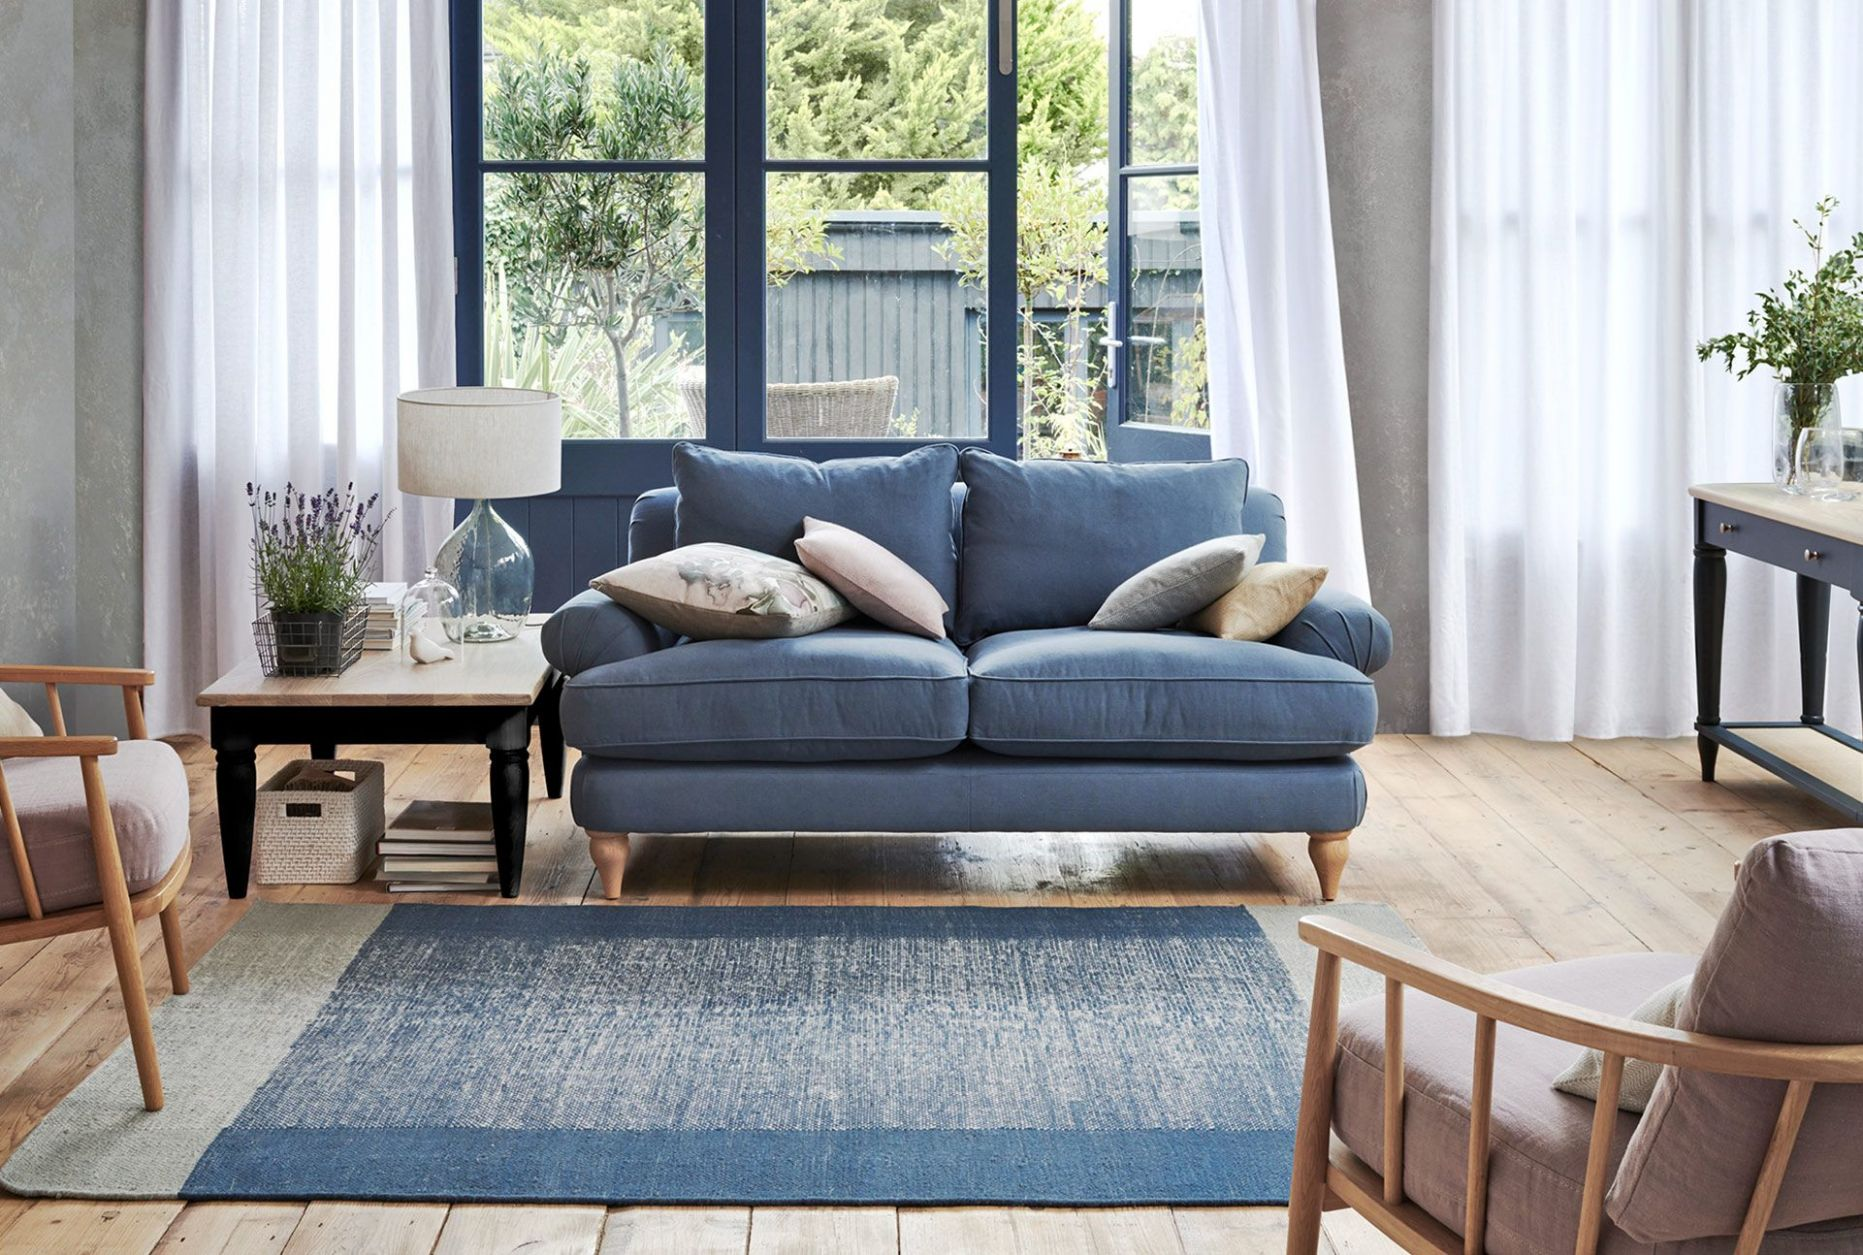 How to style the John Lewis interior design trends for A/W 9 - living room ideas john lewis